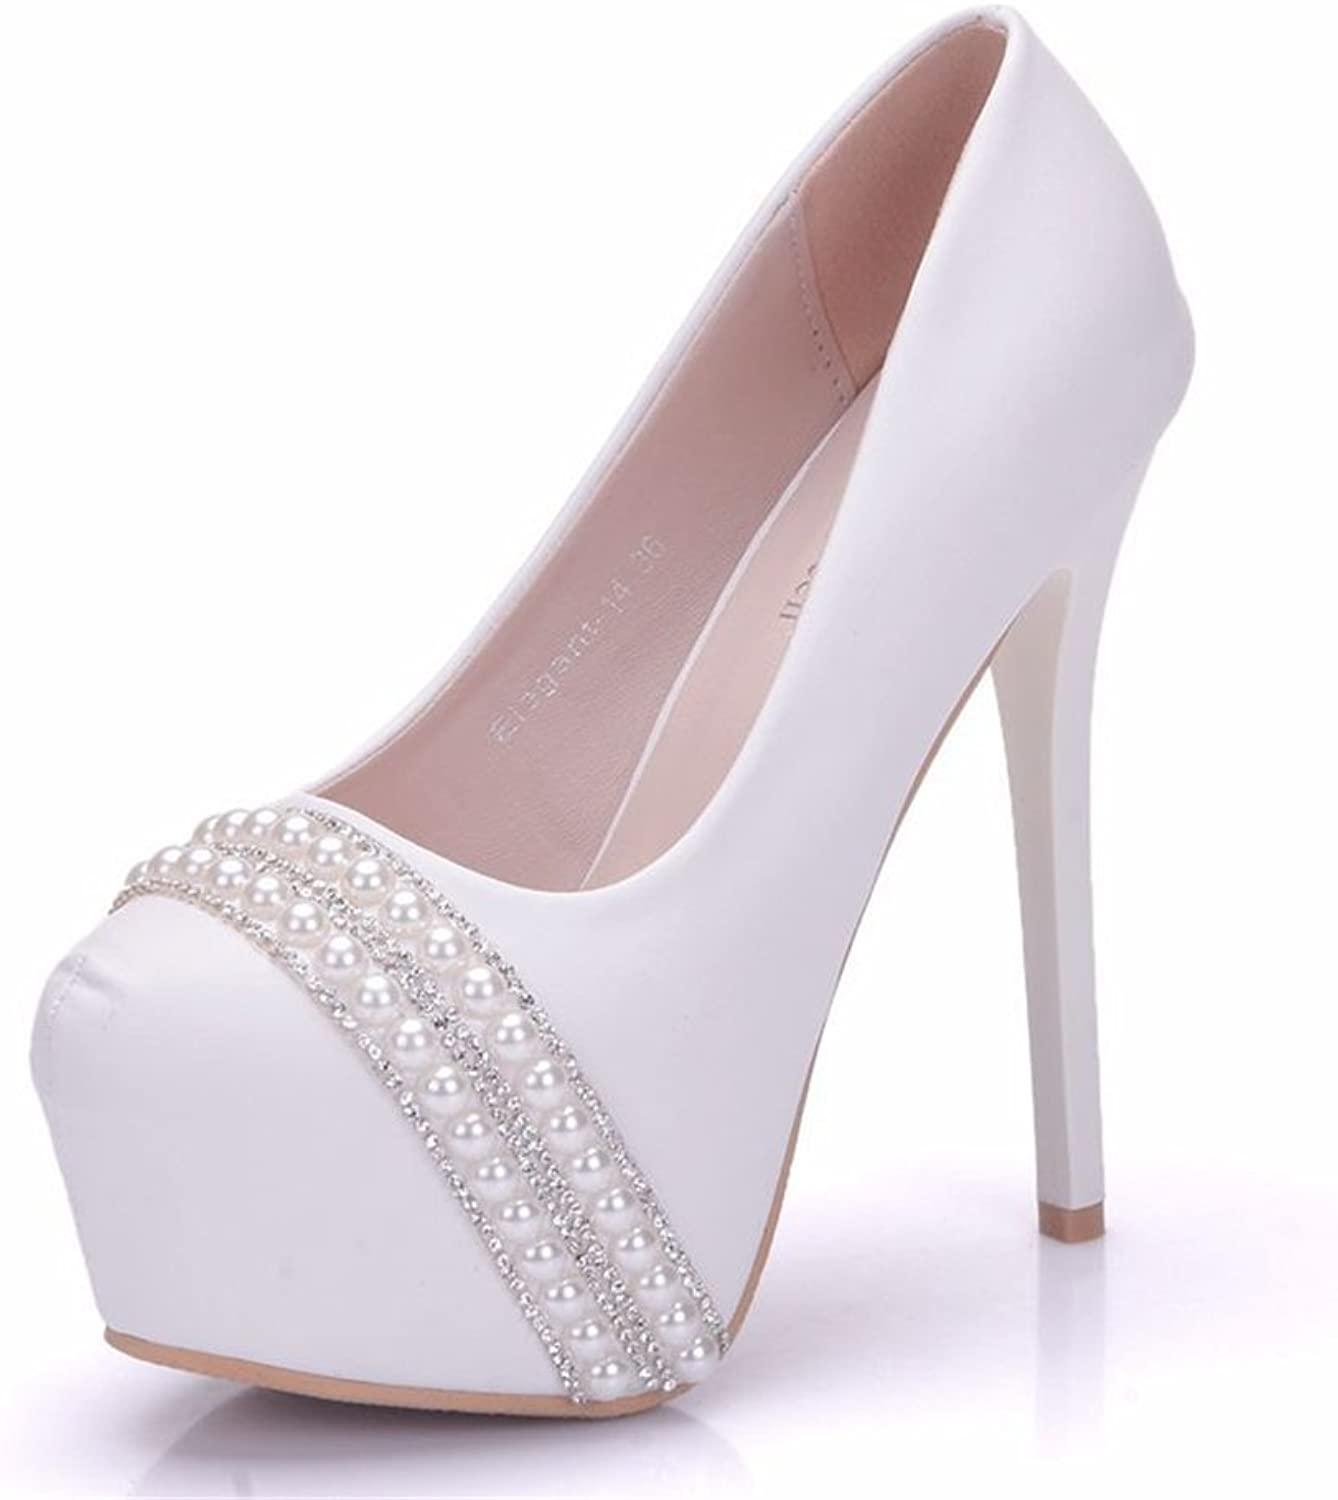 SUNNY Store Pearls Womens Platform Wedding,Party,Evening,Proms Pumps shoes